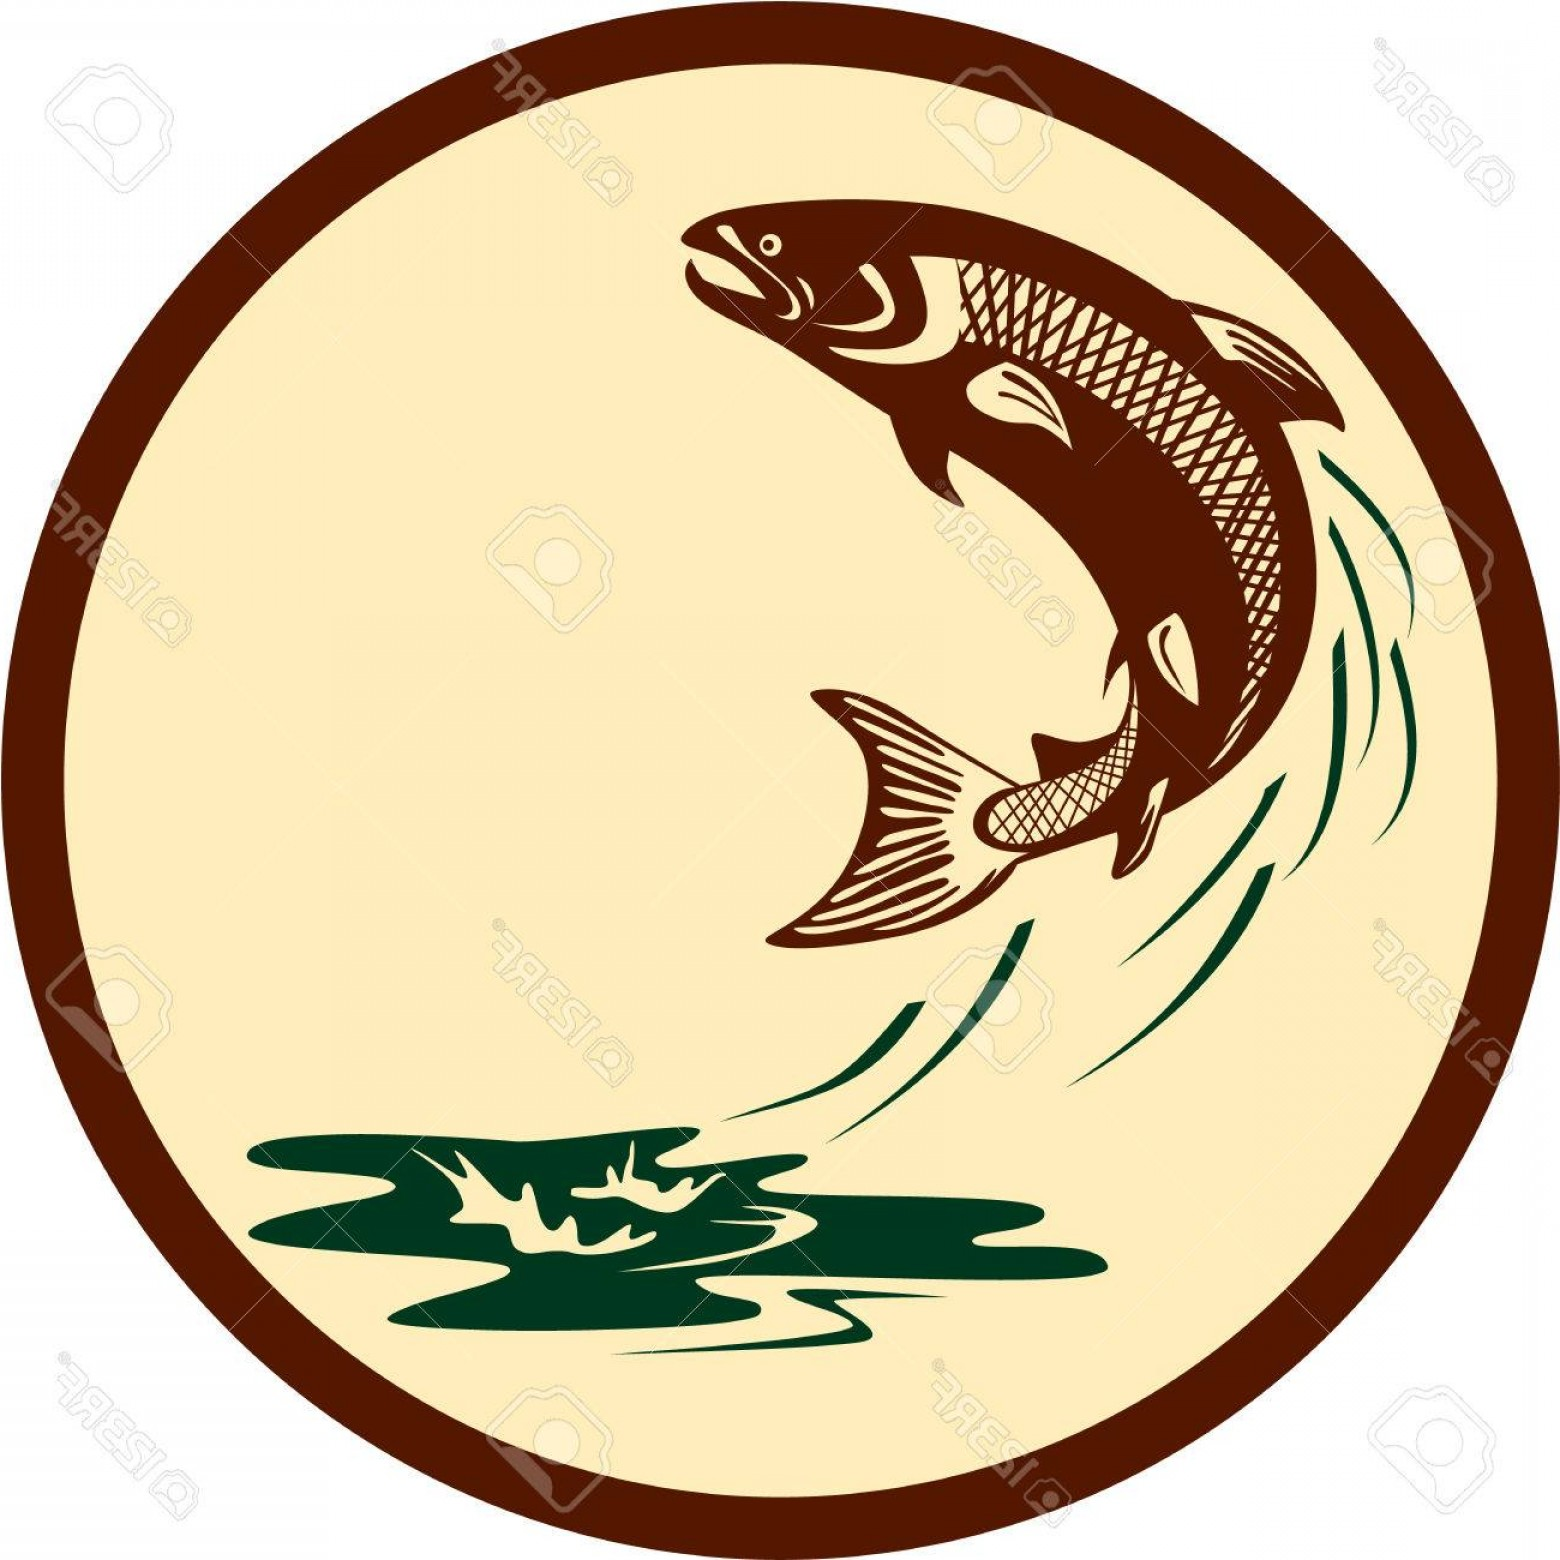 Speckled Trout Vector: Photostock Vector Illustration Of A Salmon Fish Jumping In Water Set Inside Circle Viewed From The Side On Isolated Ba